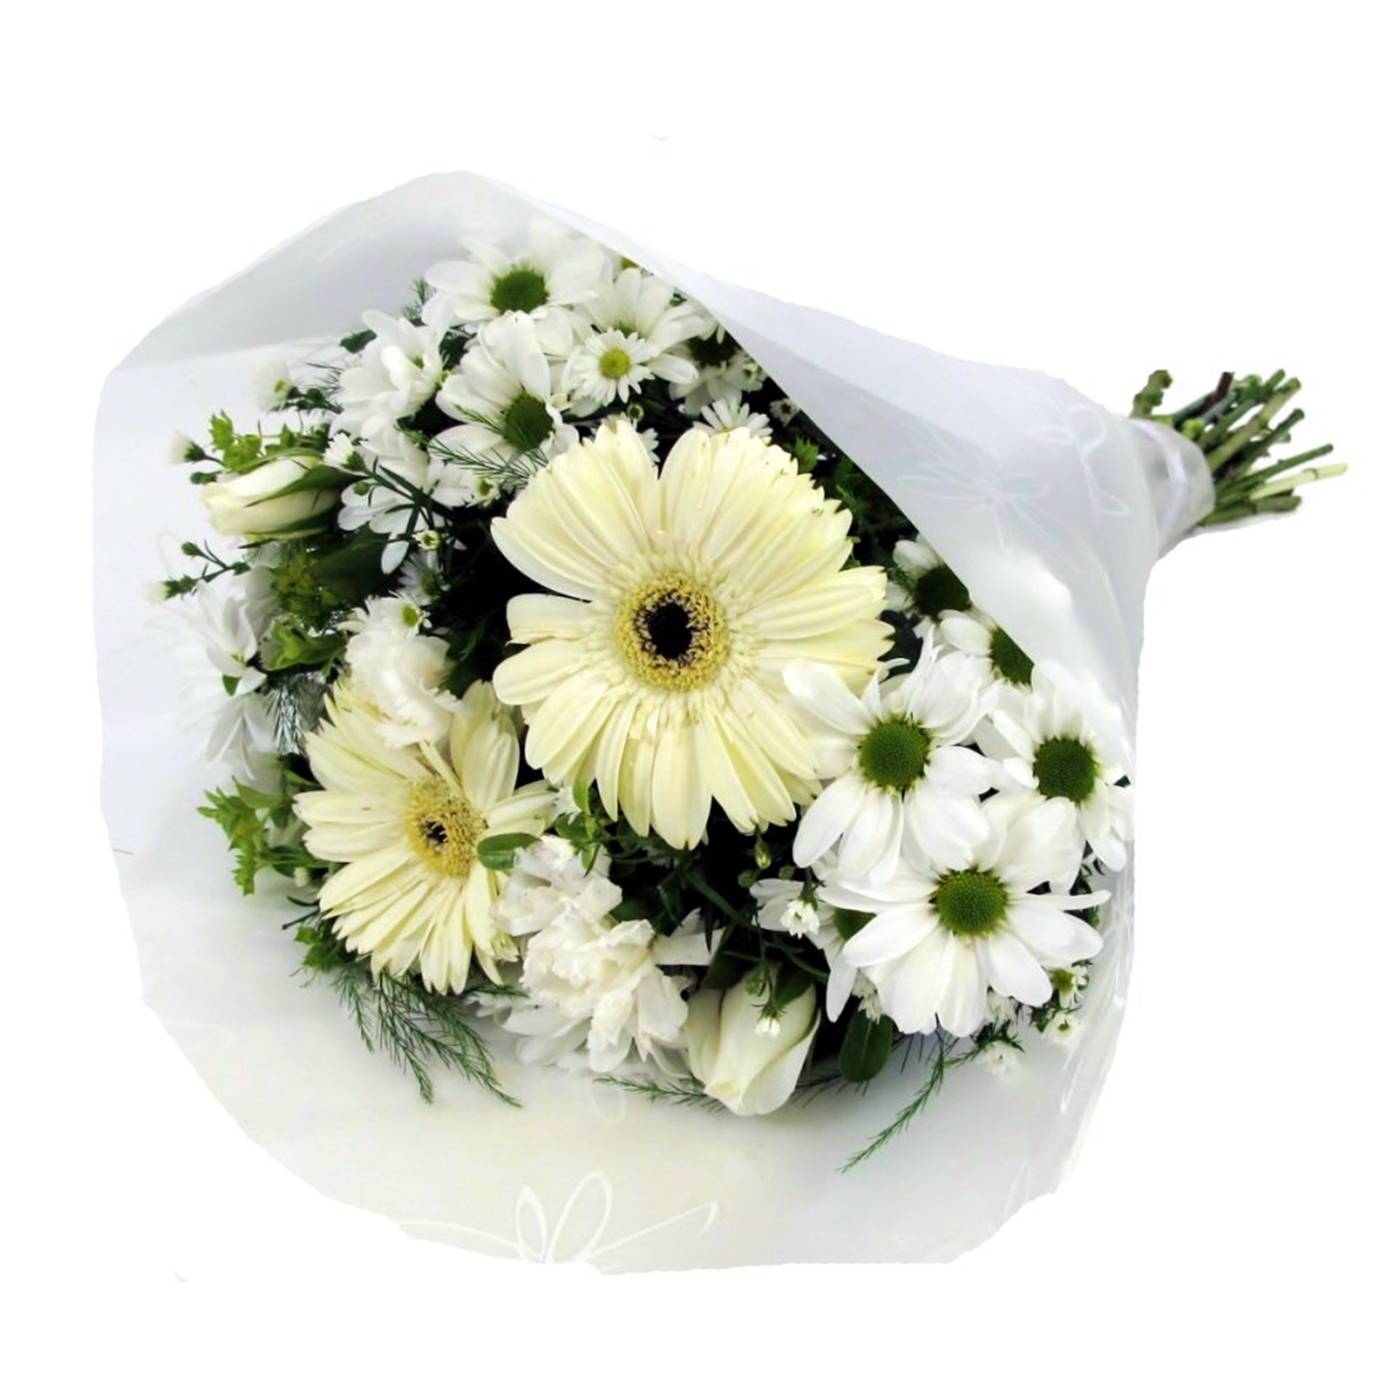 Mixed Bunches – White